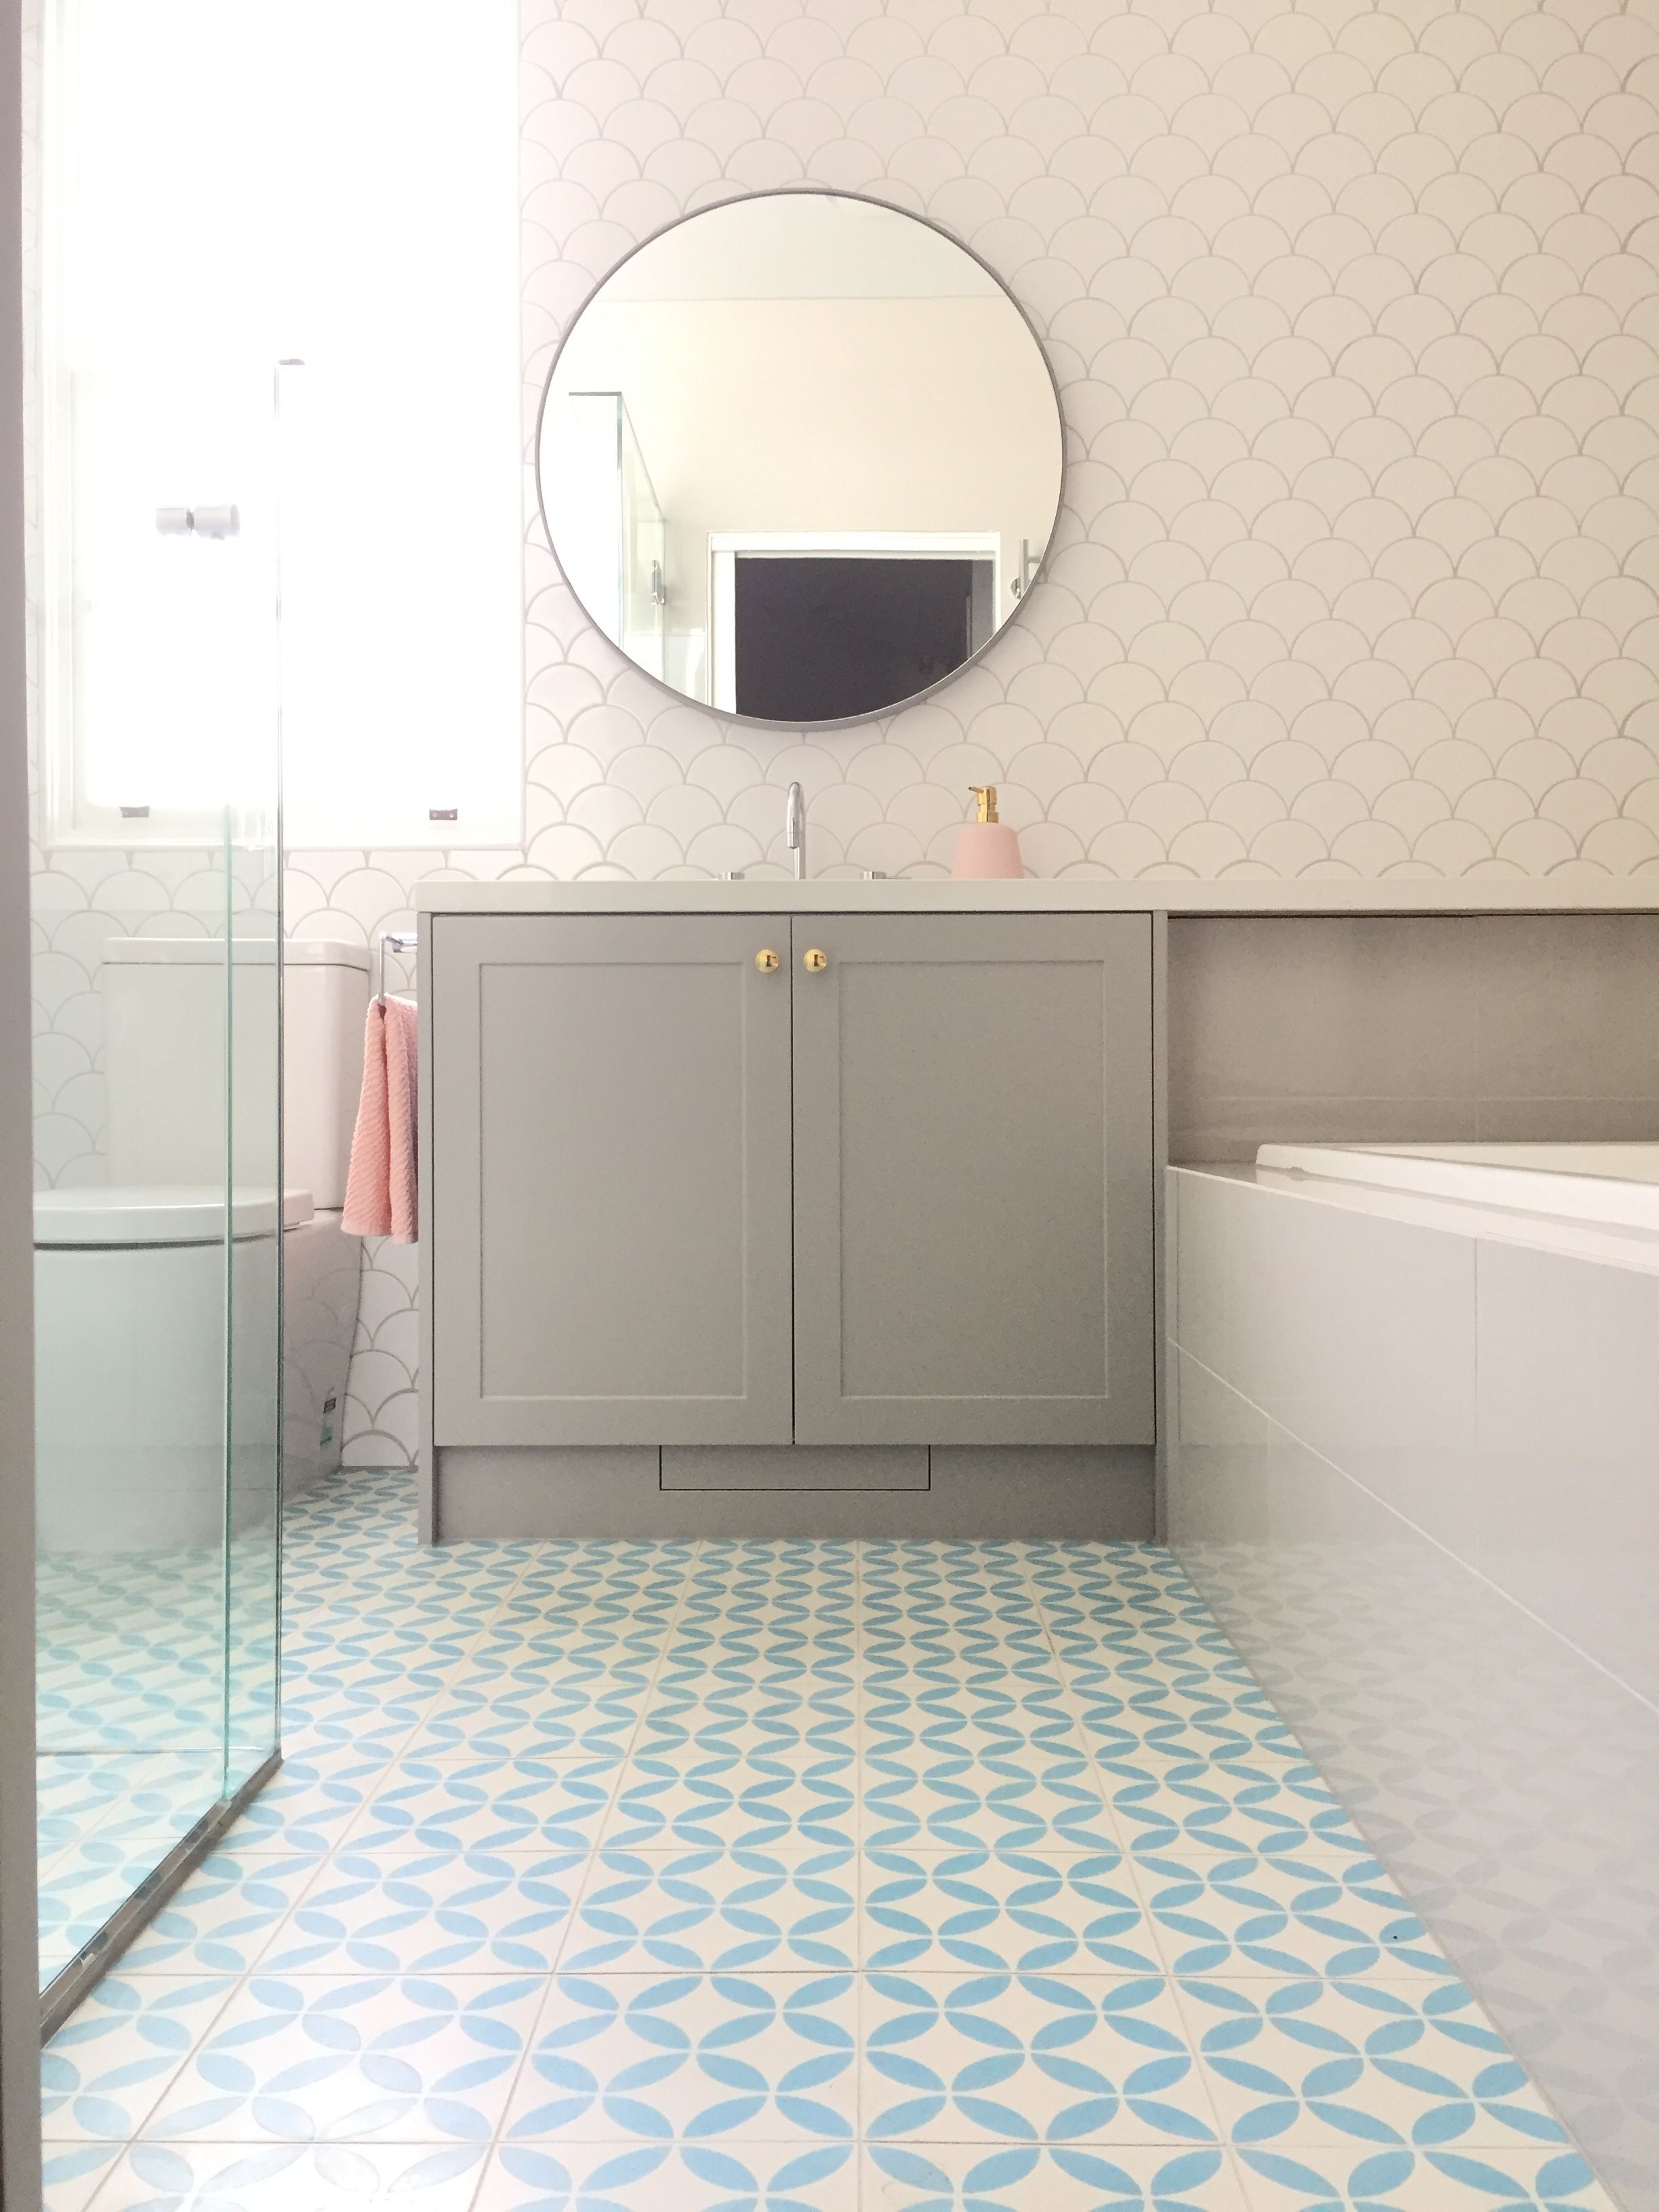 Fantastic Fun Kids Bathroom With Fish Scale Tiles And Blue Patterned Download Free Architecture Designs Scobabritishbridgeorg